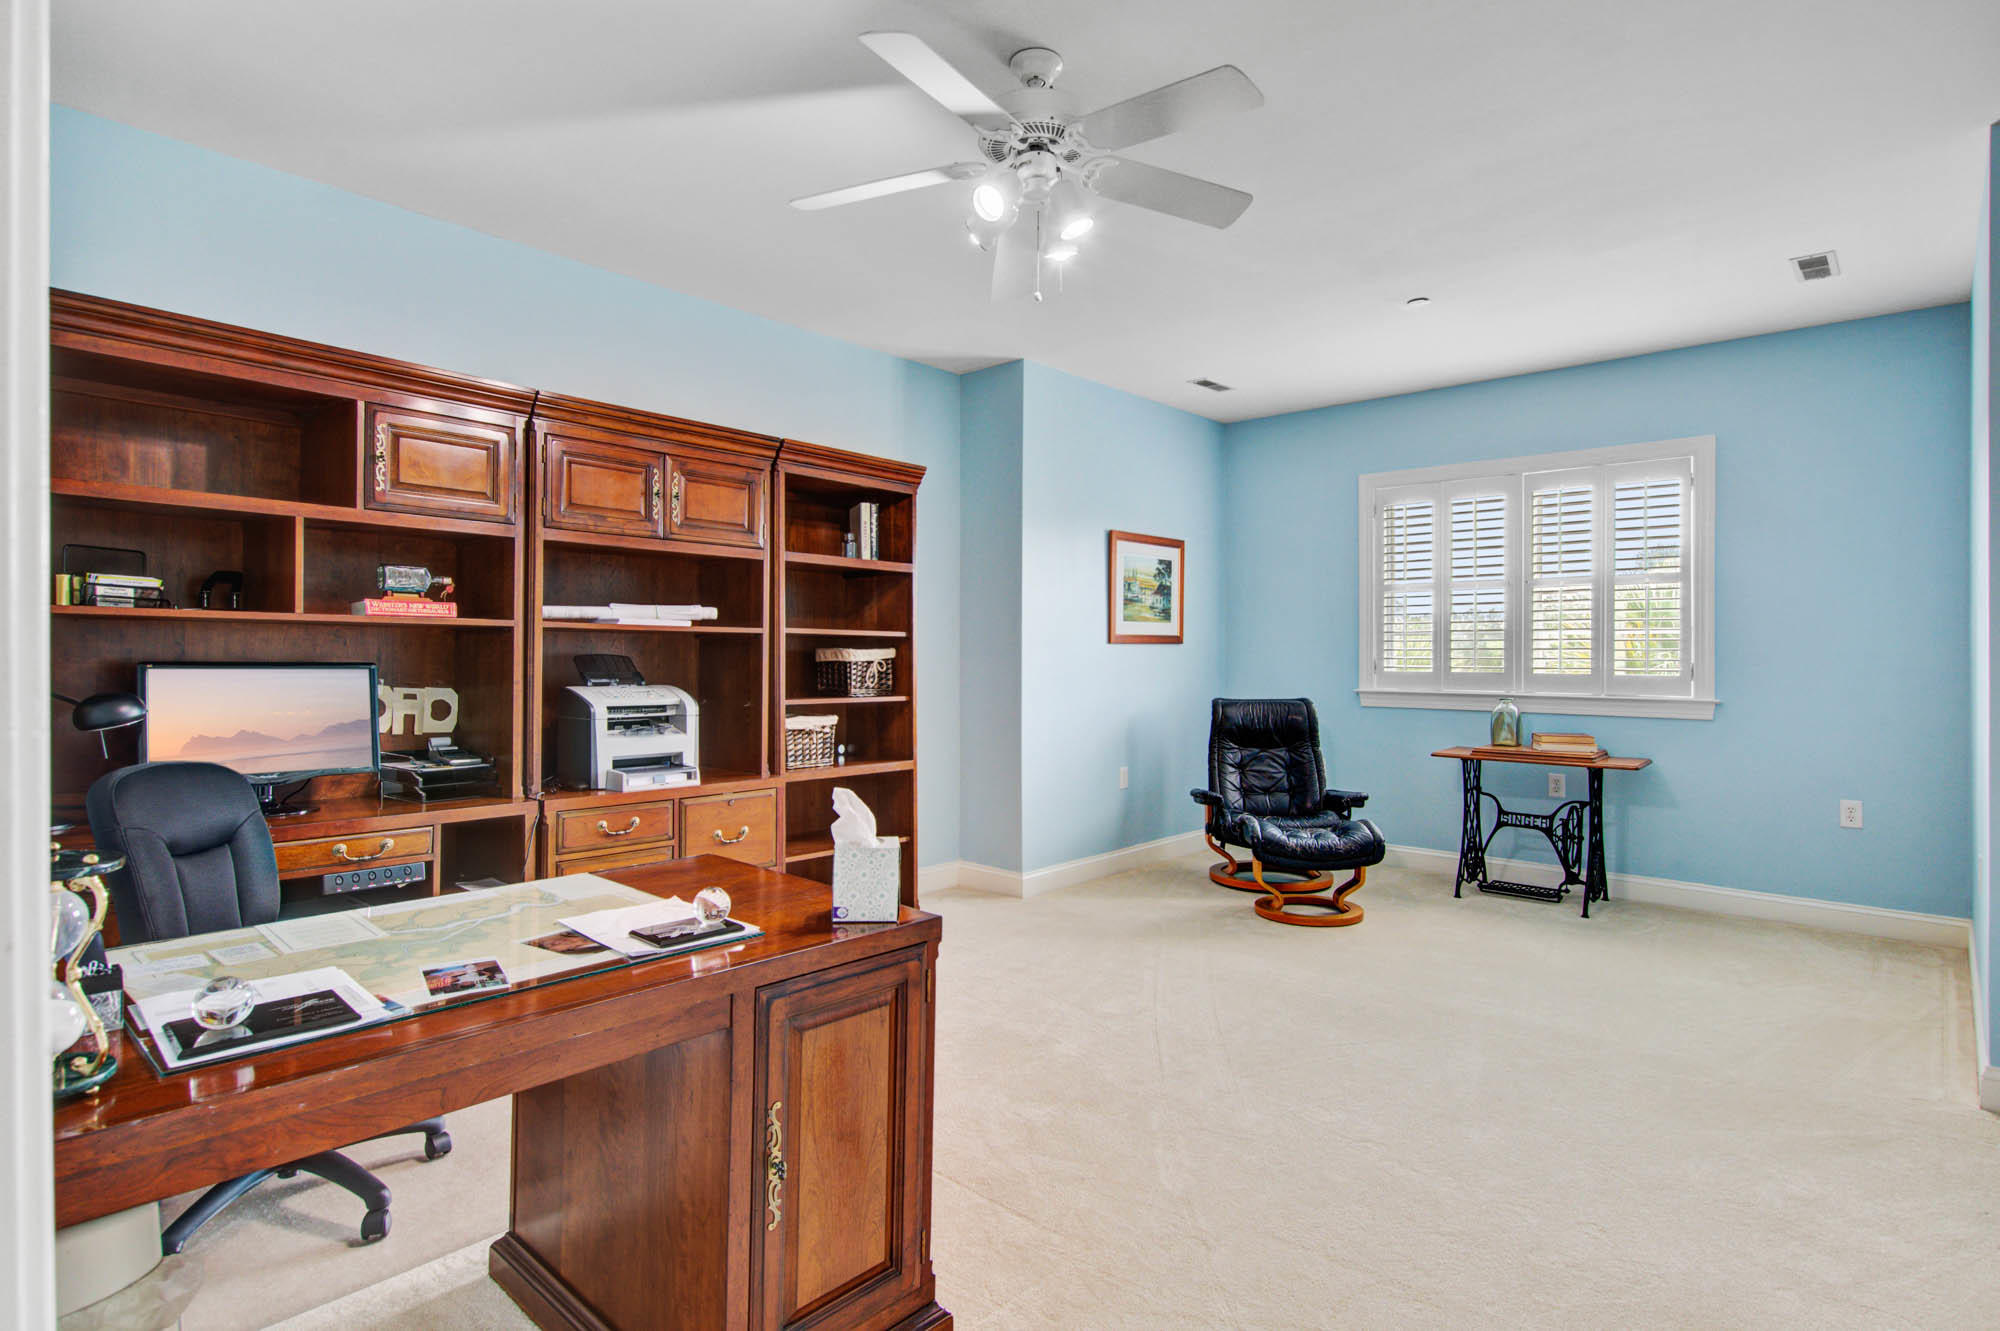 Dunes West Homes For Sale - 2069 Shell Ring, Mount Pleasant, SC - 10